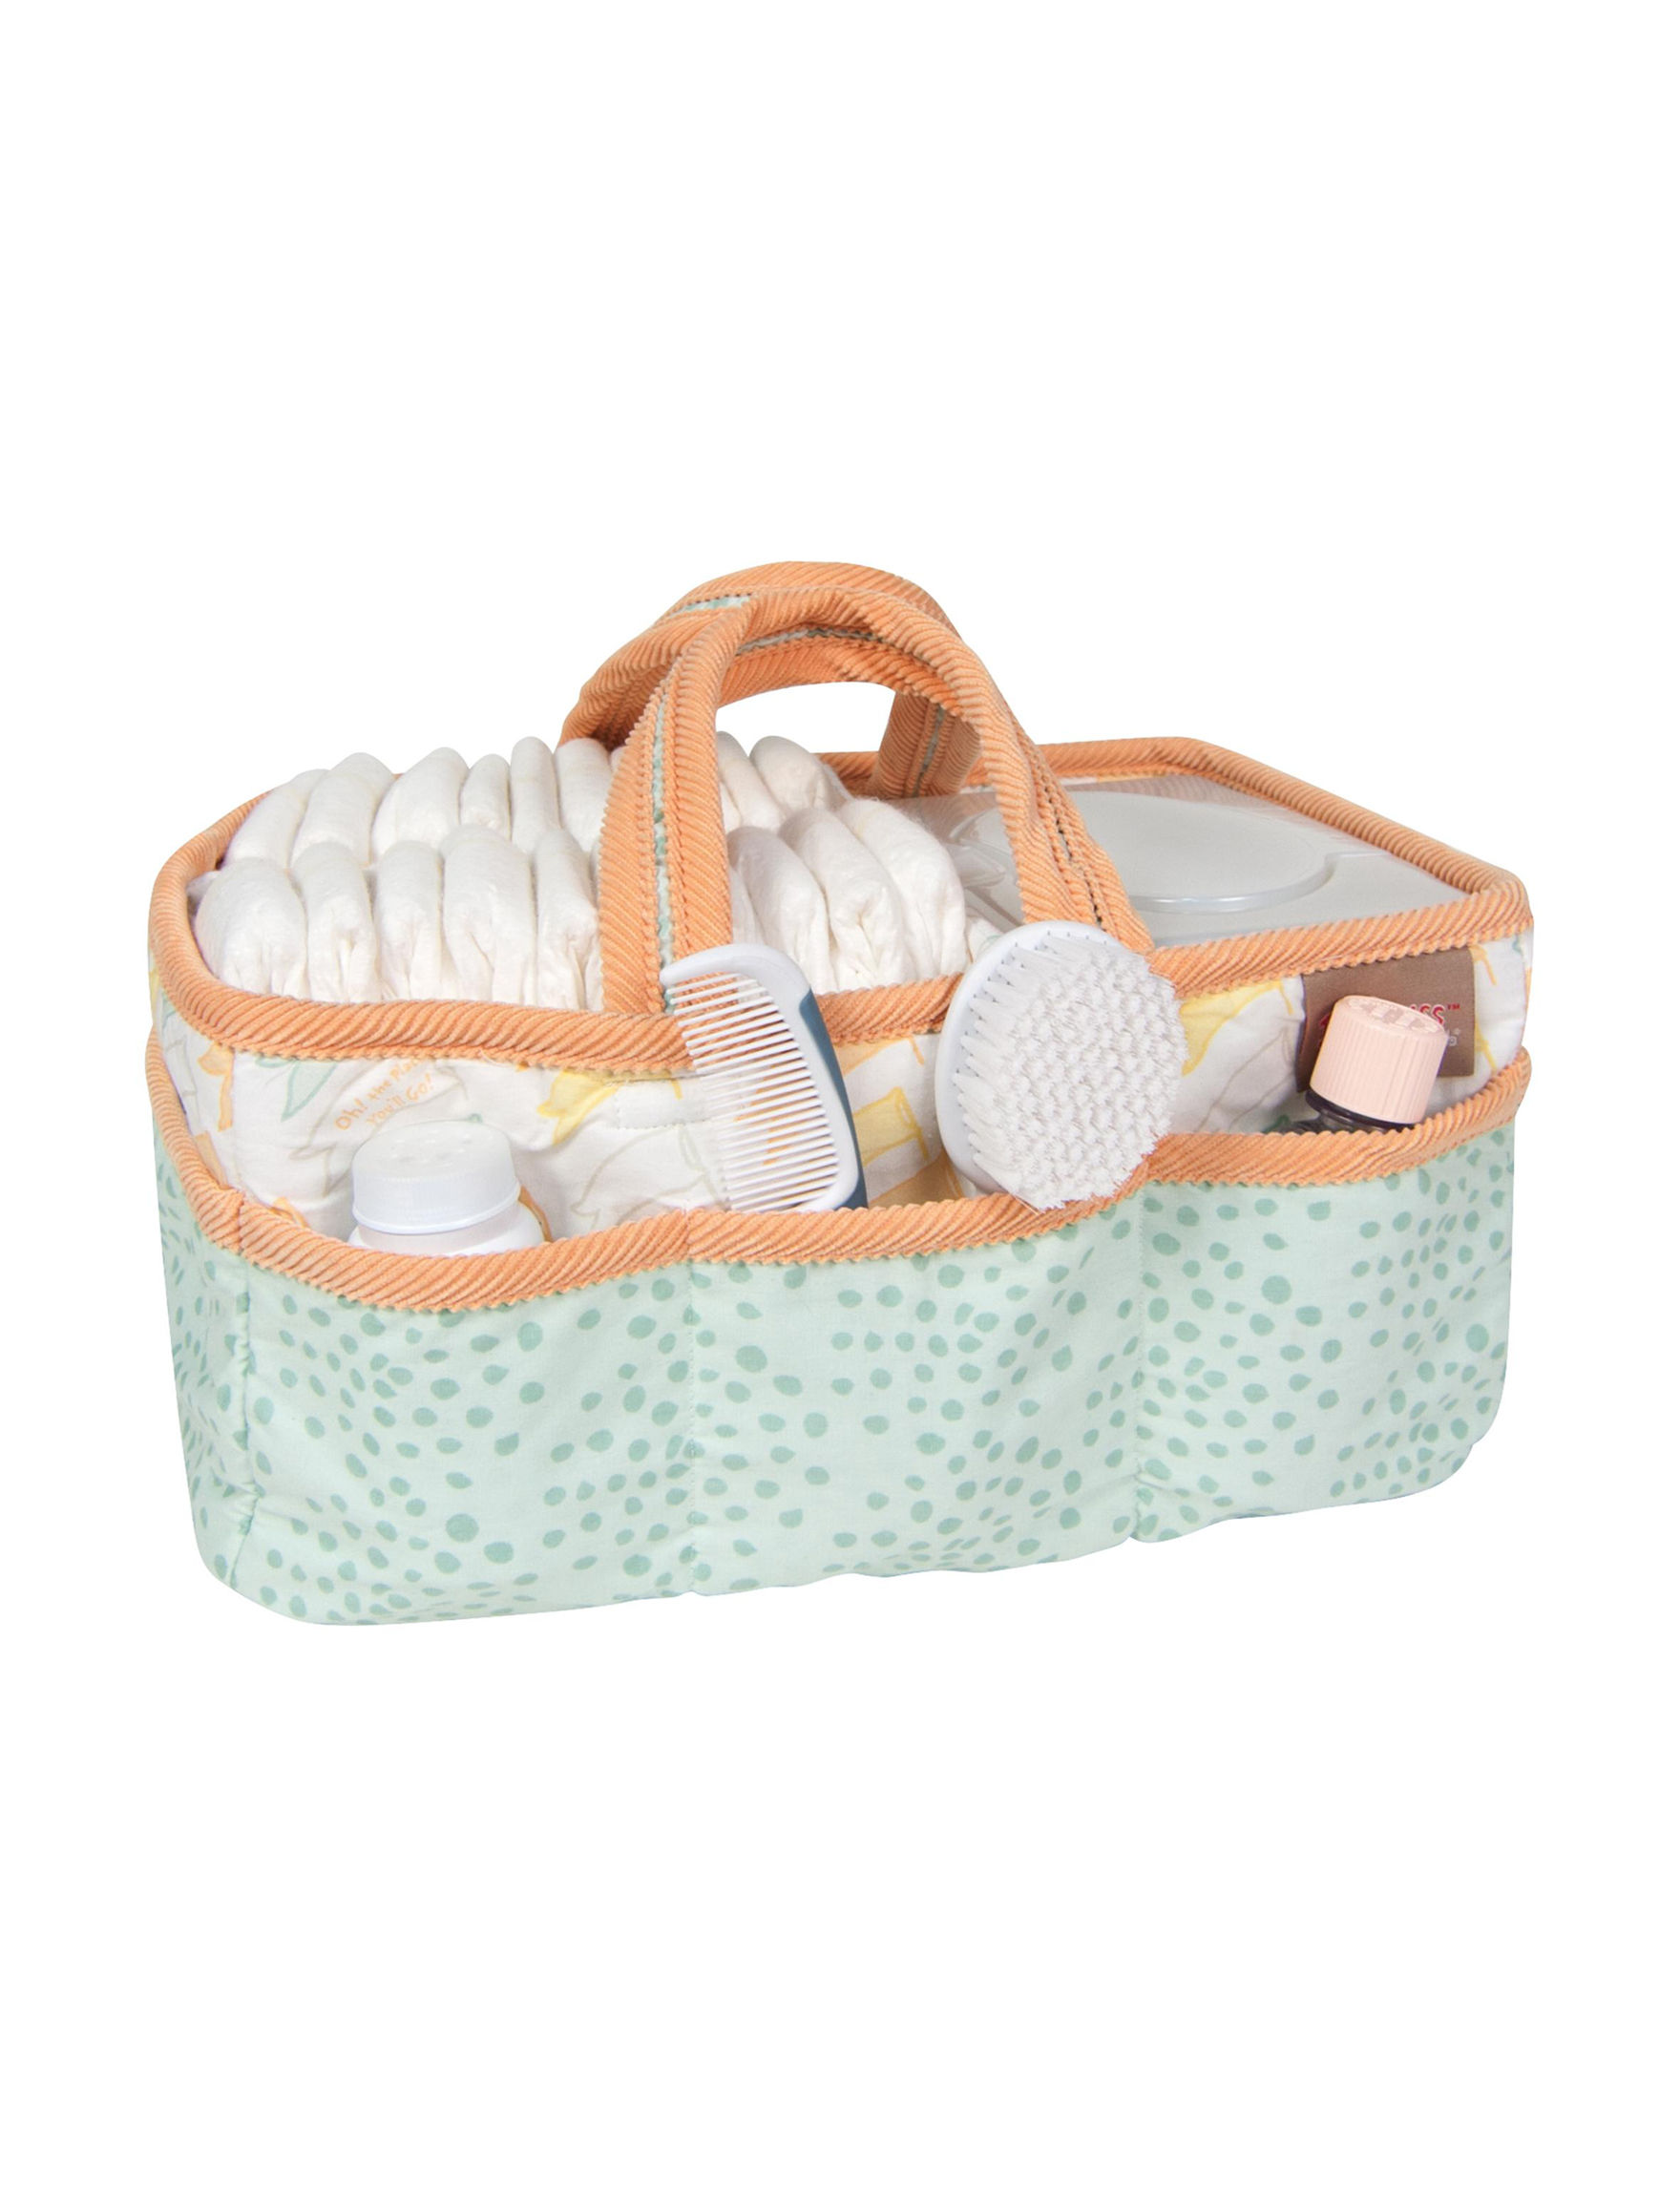 Trend Lab Multi Carriers & Totes Diaper Bags